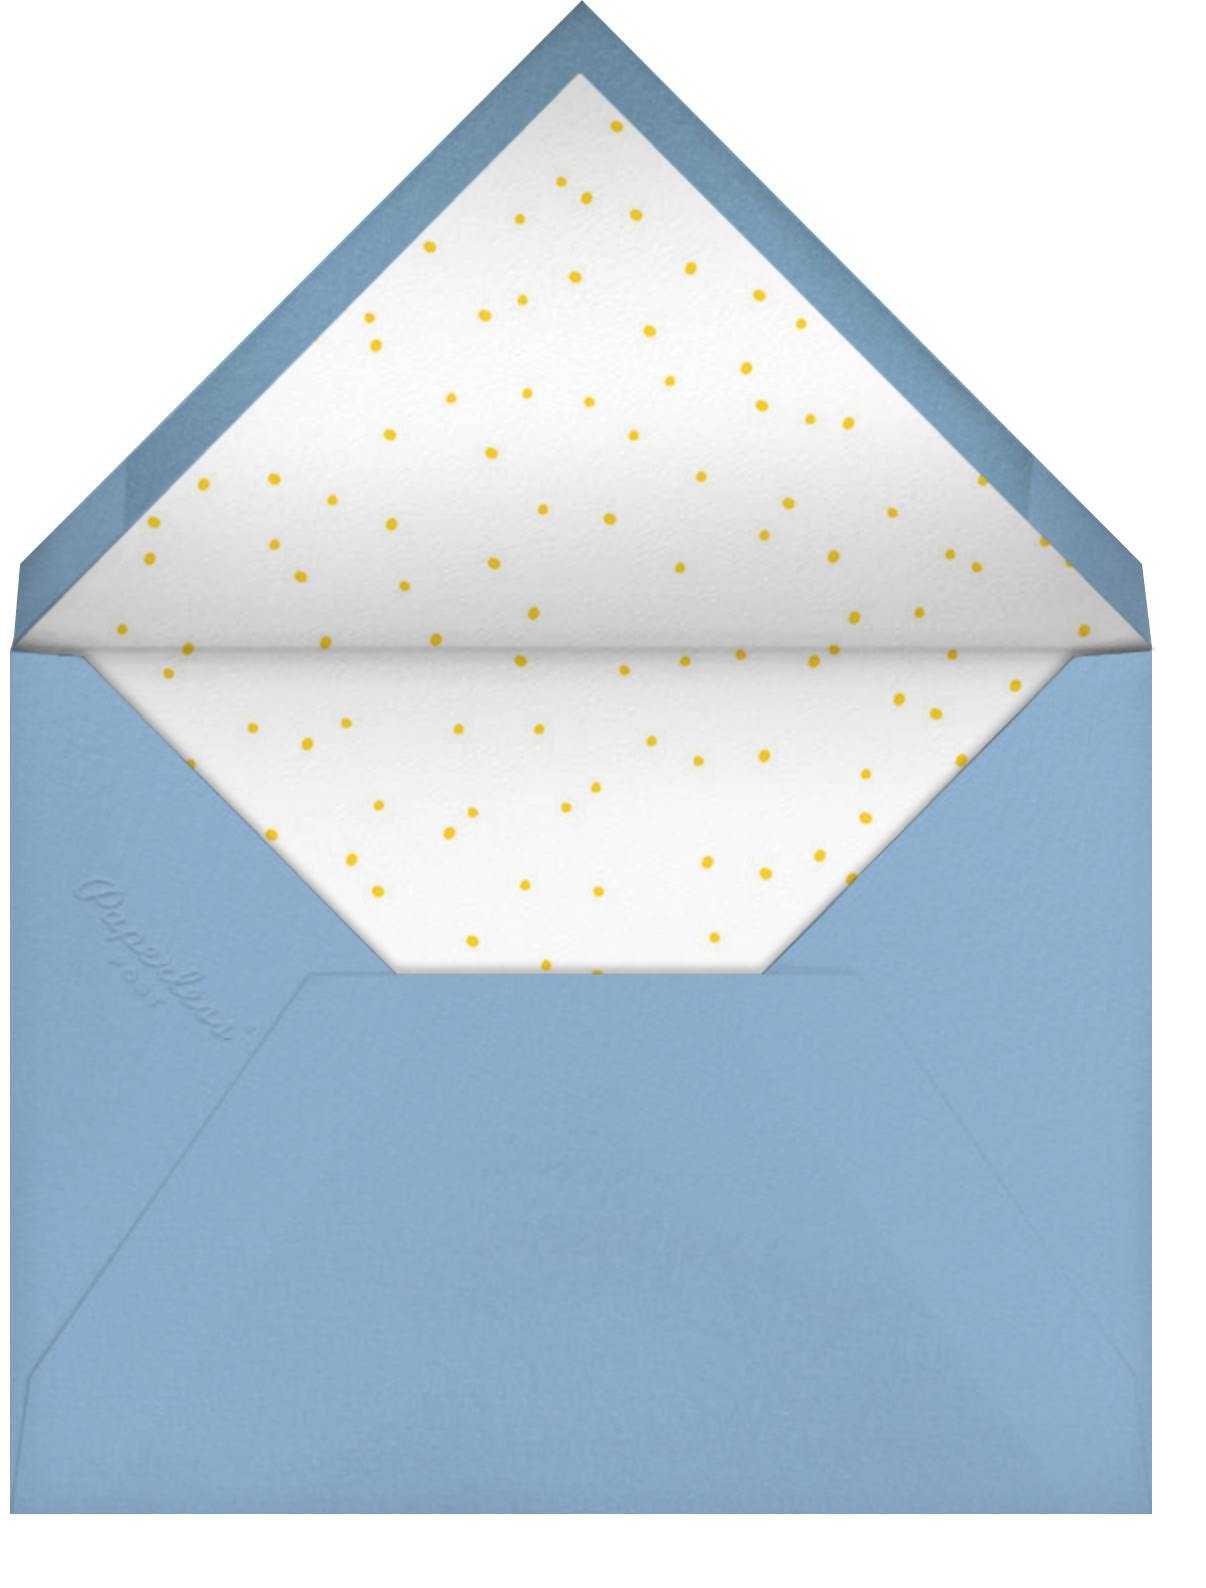 Pick-me-up - Little Cube - Thinking of you - envelope back